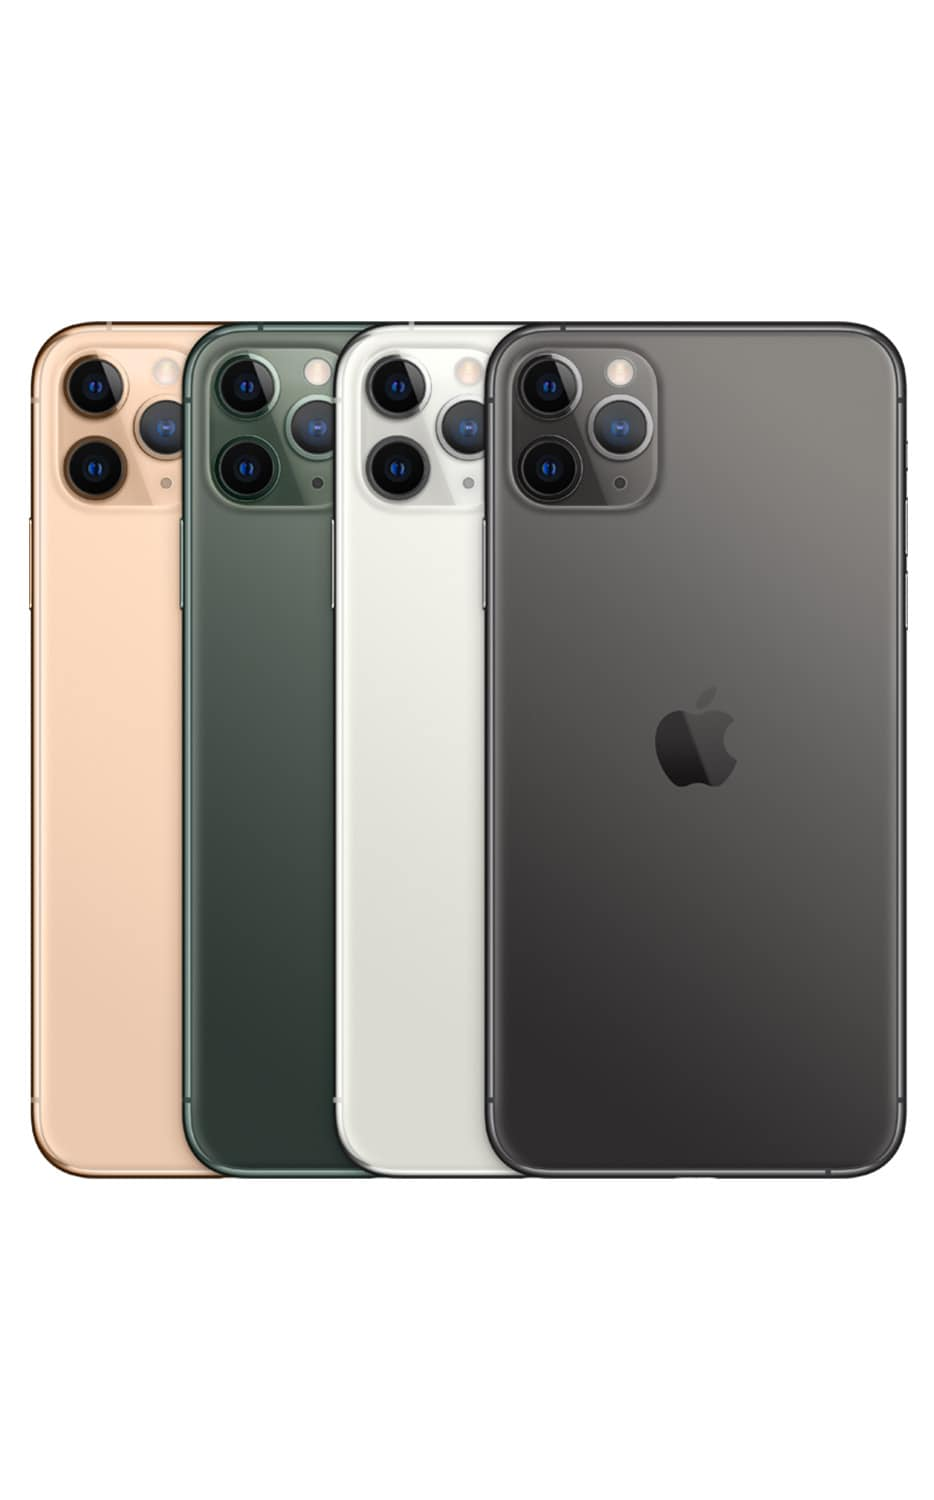 New Apple iPhone 11 Pro Max | 4 colors in 64GB, 128GB